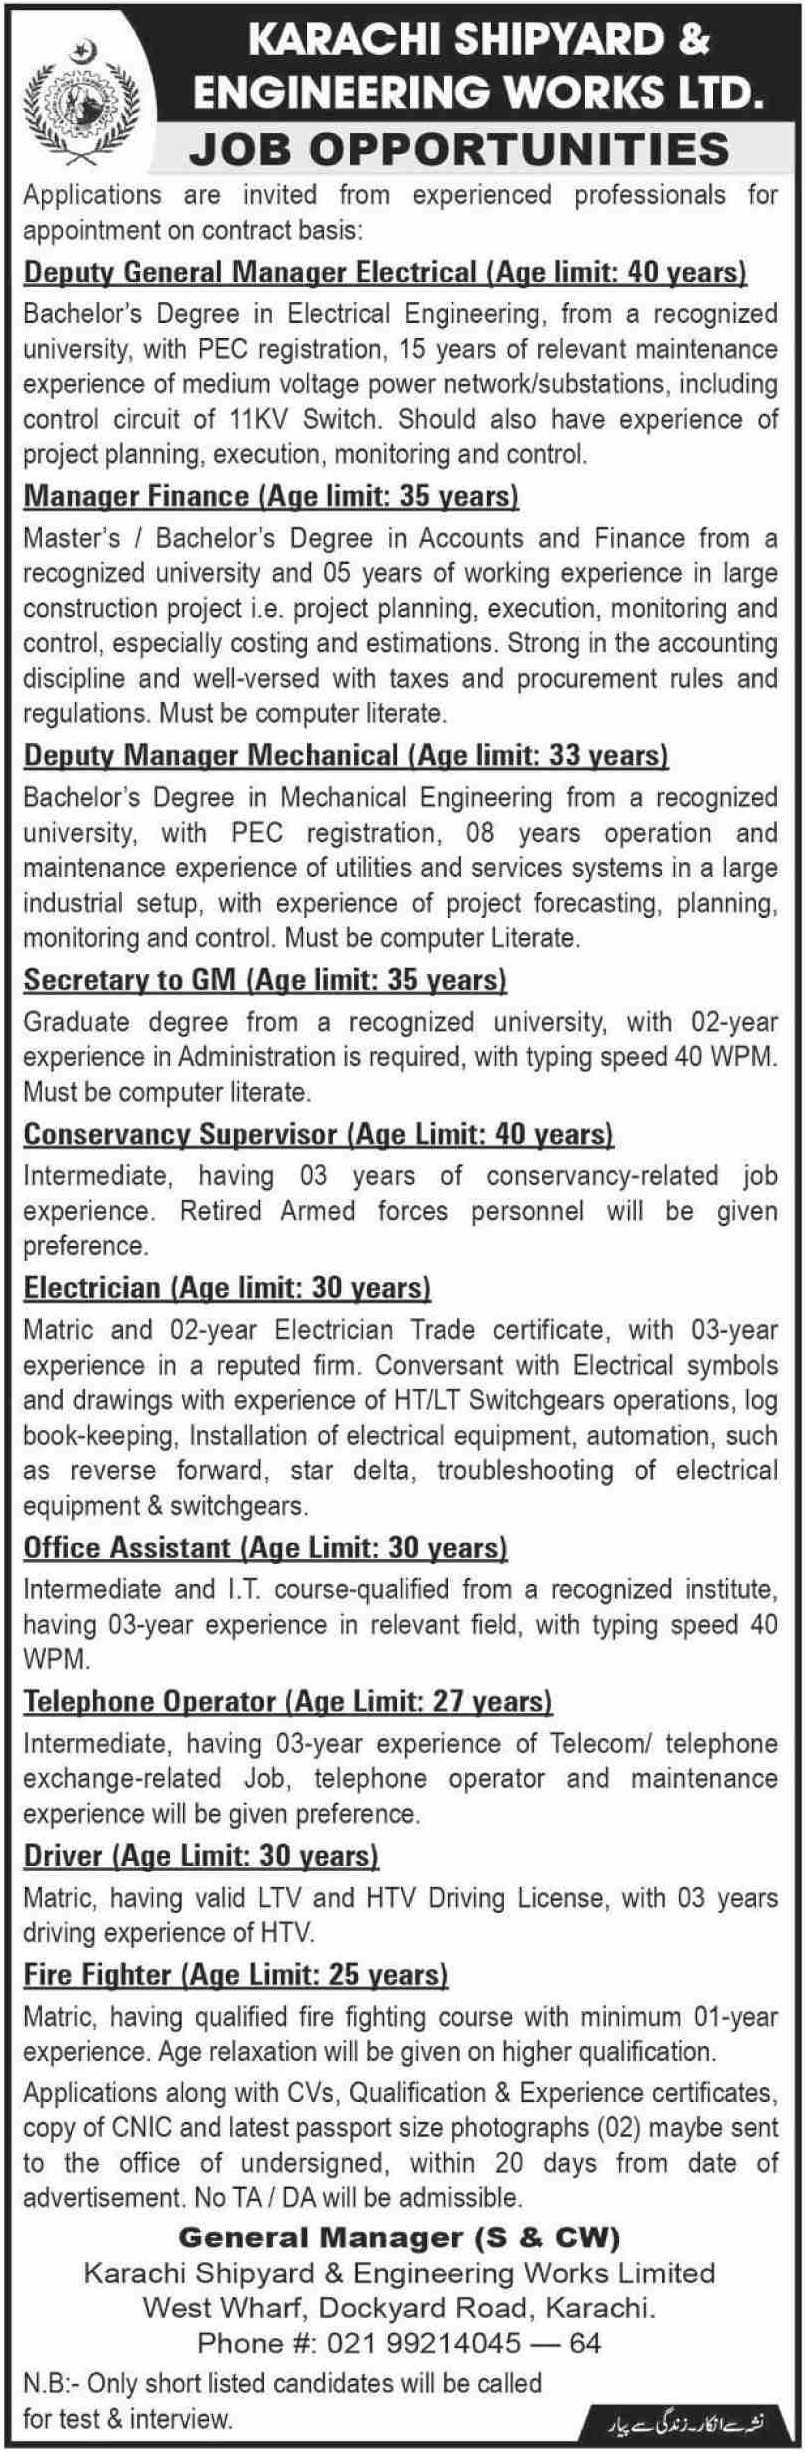 Karachi Shipyard & Engineering Works Ltd Jobs 2019